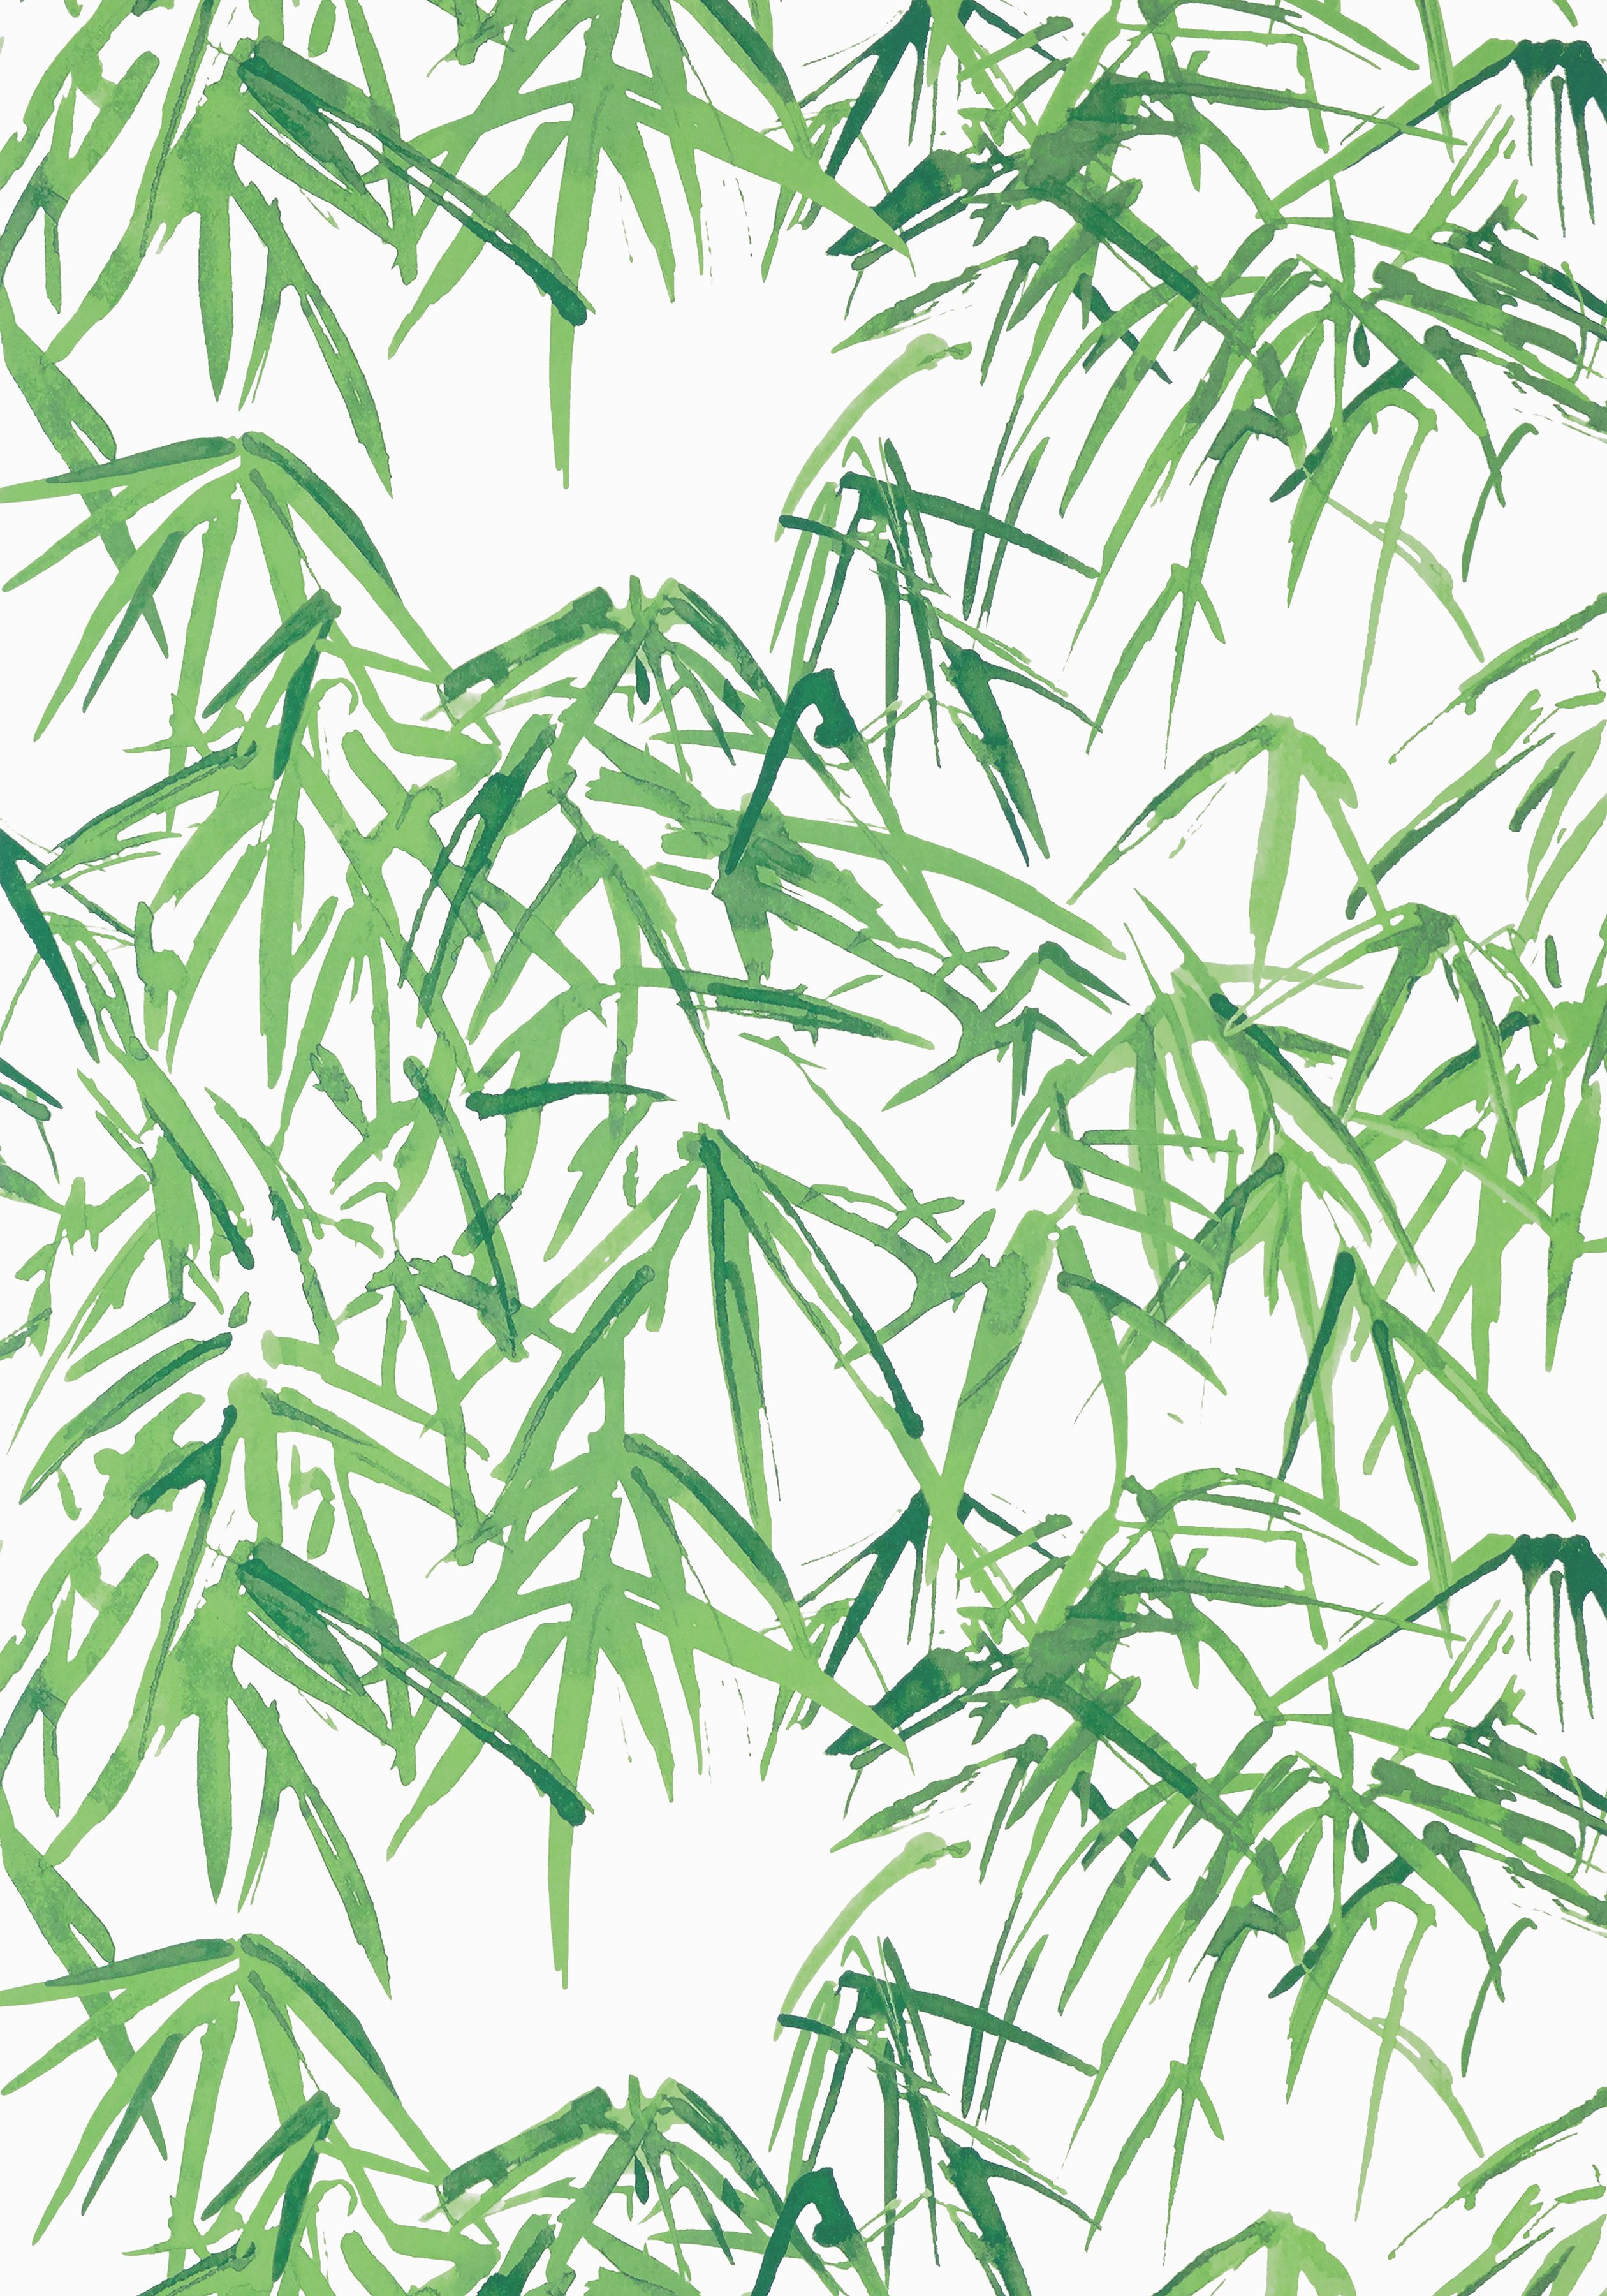 KYOTO LEAVES, Emerald Green, AT9869, Collection Nara from